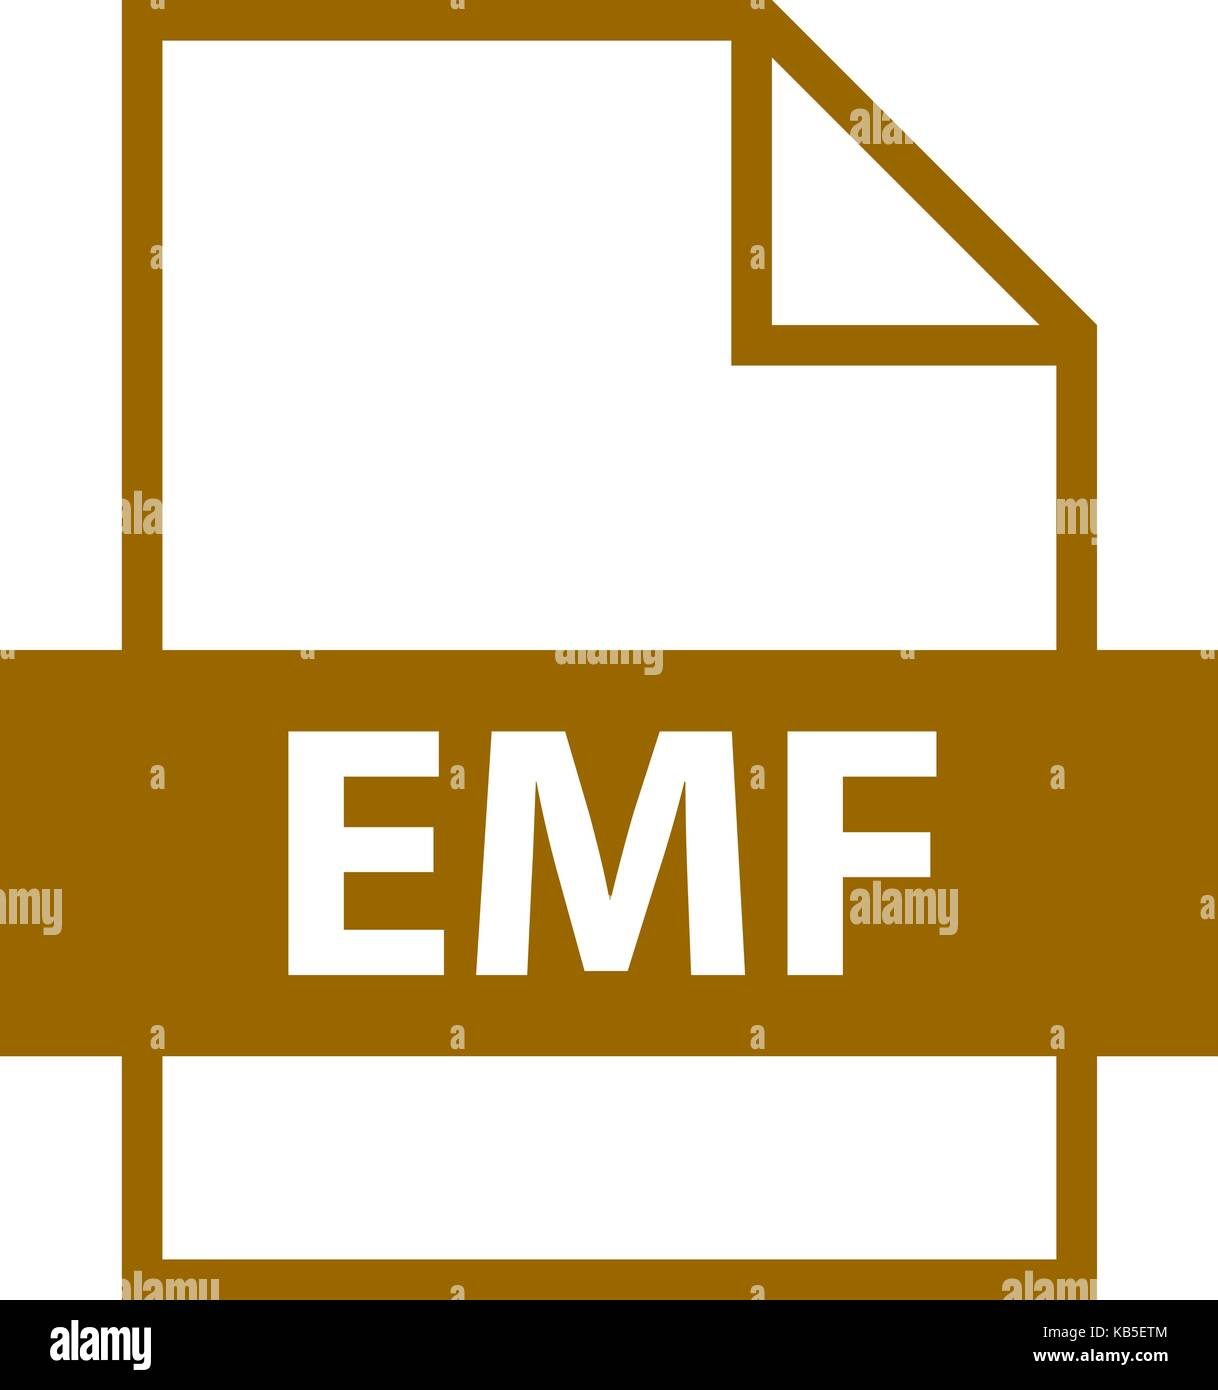 Use it in all your designs. Filename extension icon EMF Enhanced MetaFile in flat style. Quick and easy recolorable - Stock Image